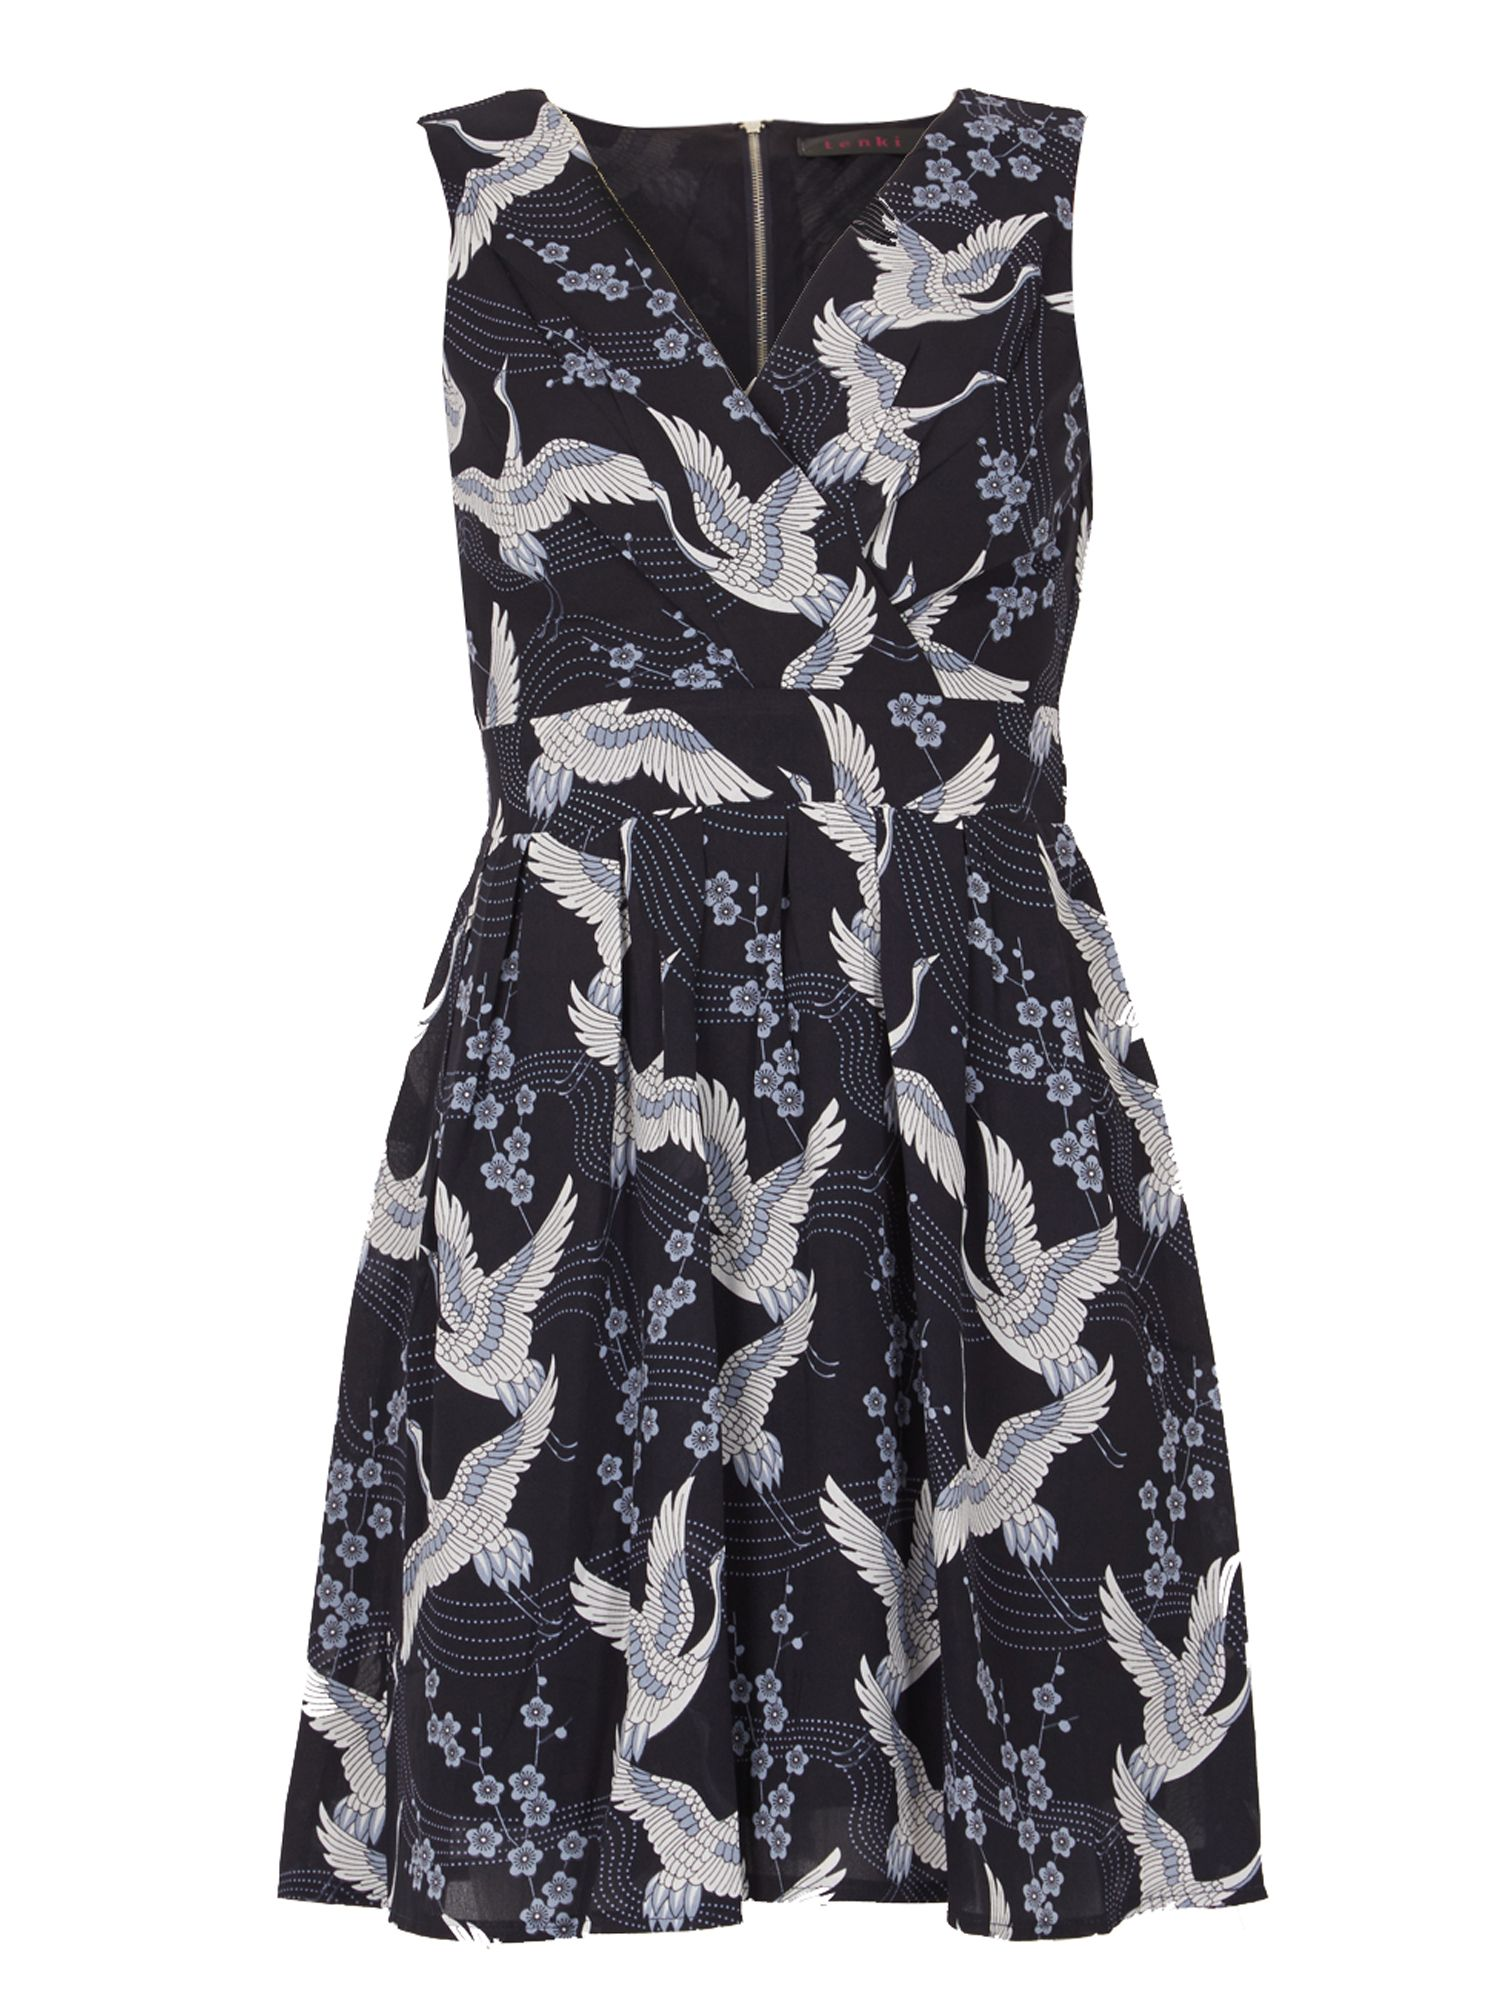 TENKI V-Neck Bird Print Skater Dress, Blue